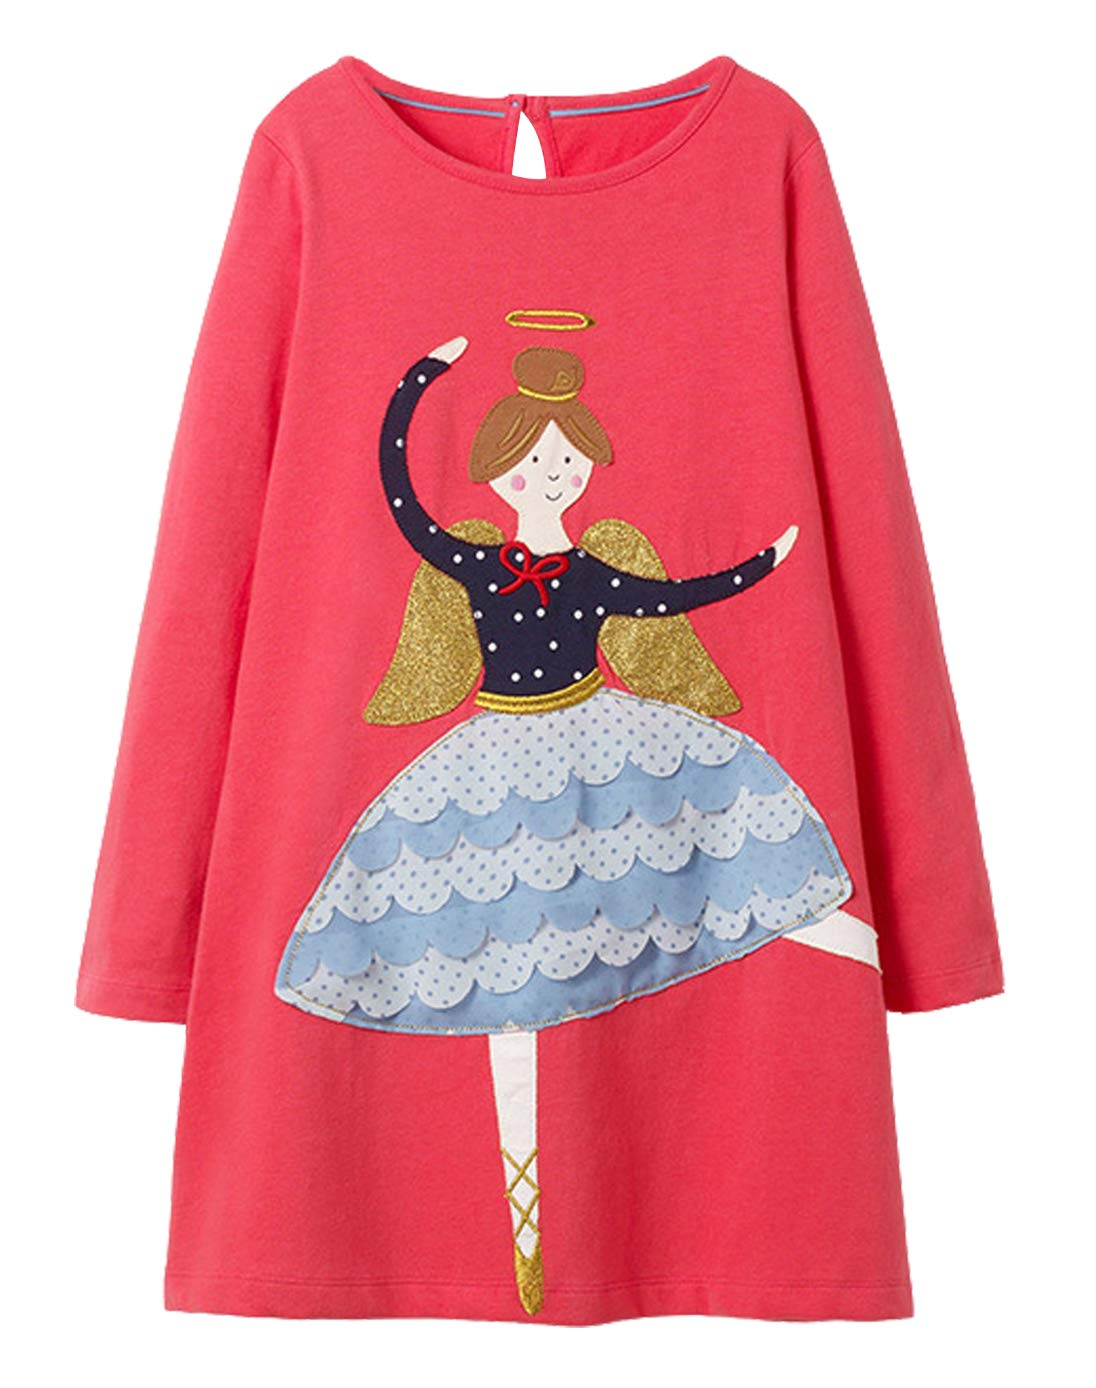 Fiream Girls Cotton Longsleeve Party Dresses Special Occasion Cartoon Print by(1101,7T/7-8YRS)